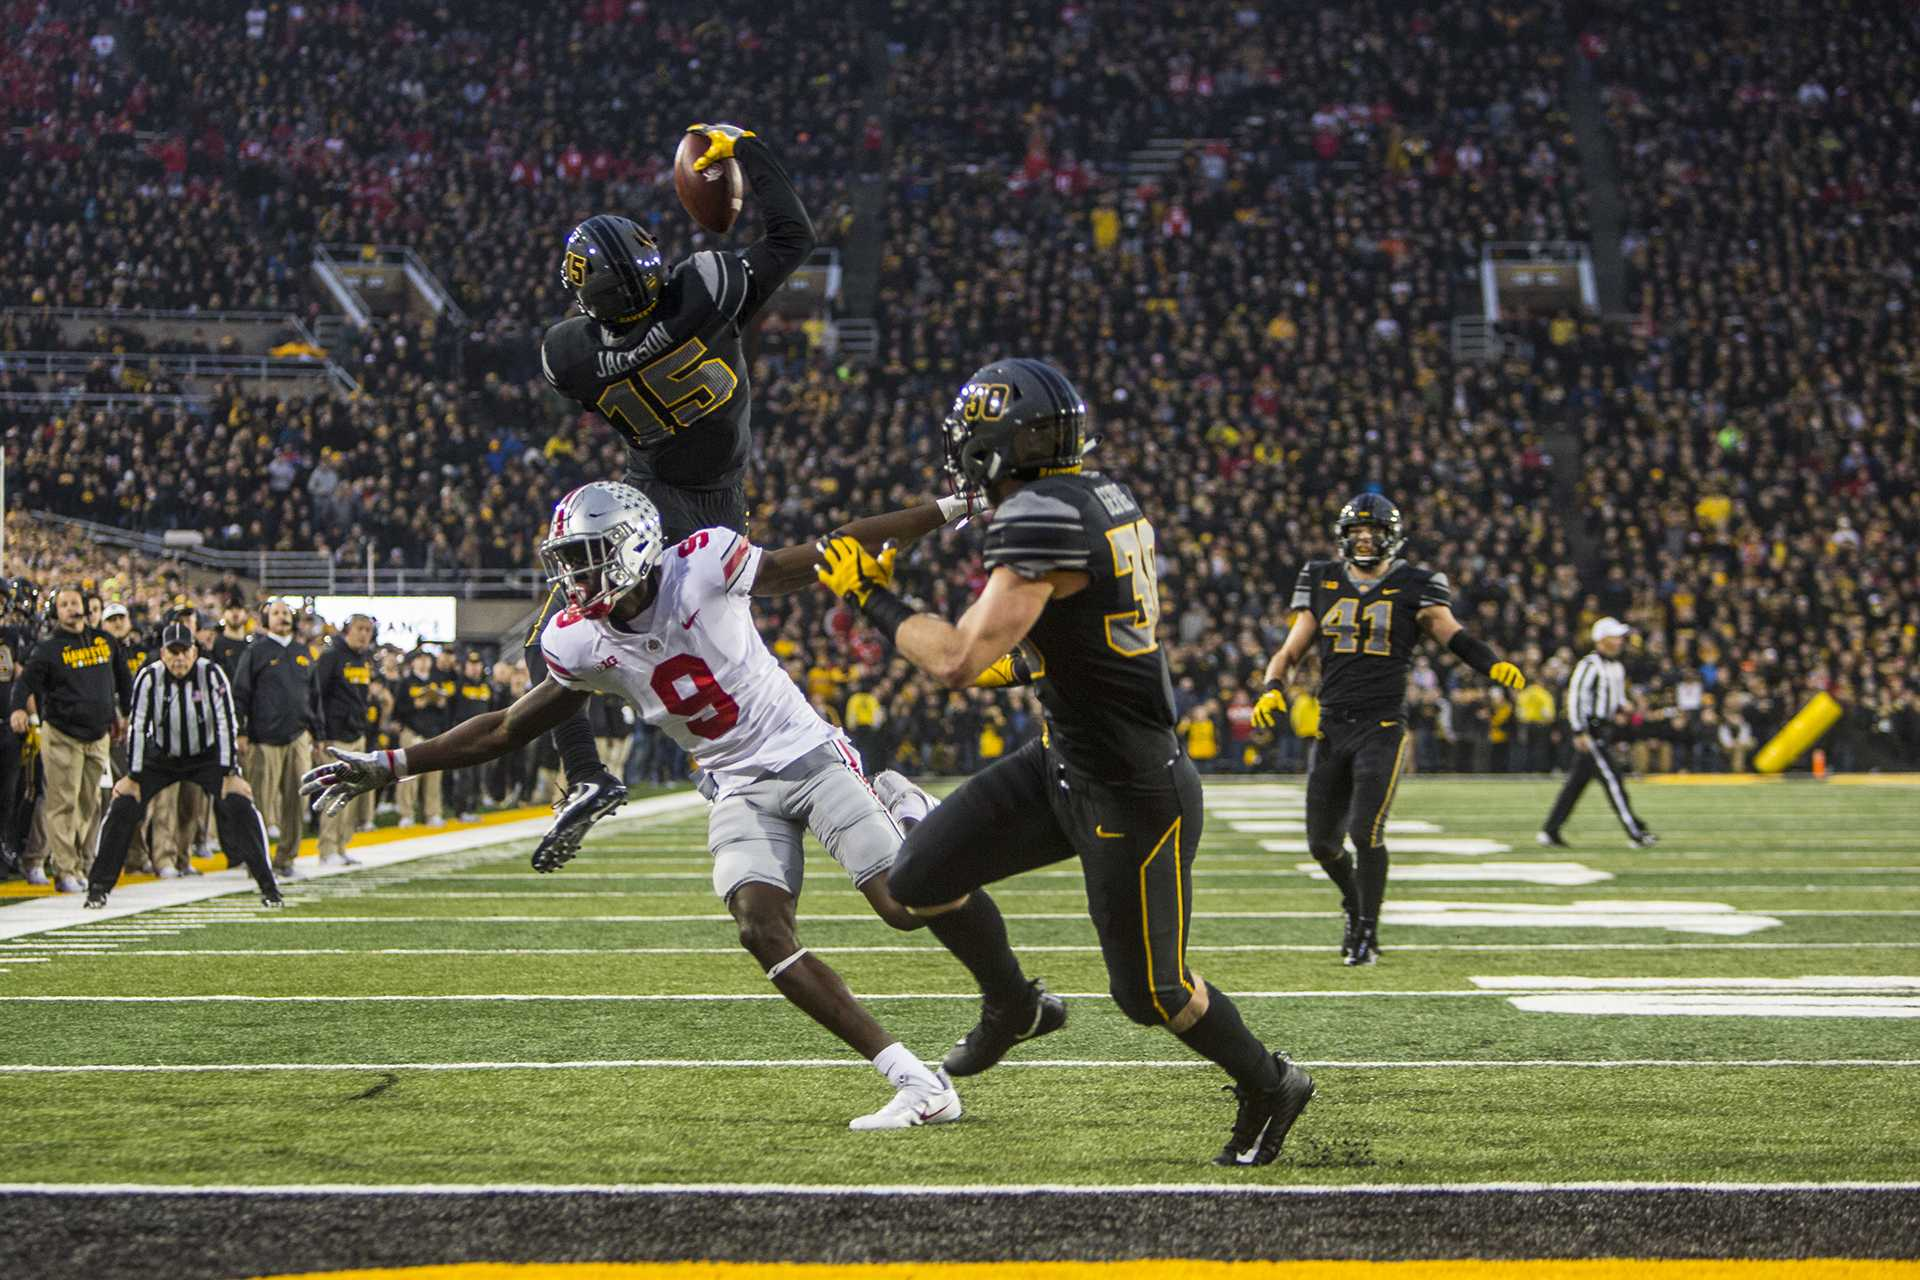 Iowa cornerback Josh Jackson makes a jumping one handed interception during Iowa's game against Ohio State at Kinnick Stadium on Saturday, Nov. 4, 2017. Jackson made three interceptions on the day as the Hawkeyes defeated the Buckeyes, 55-24. (Nick Rohlman/The Daily Iowan)